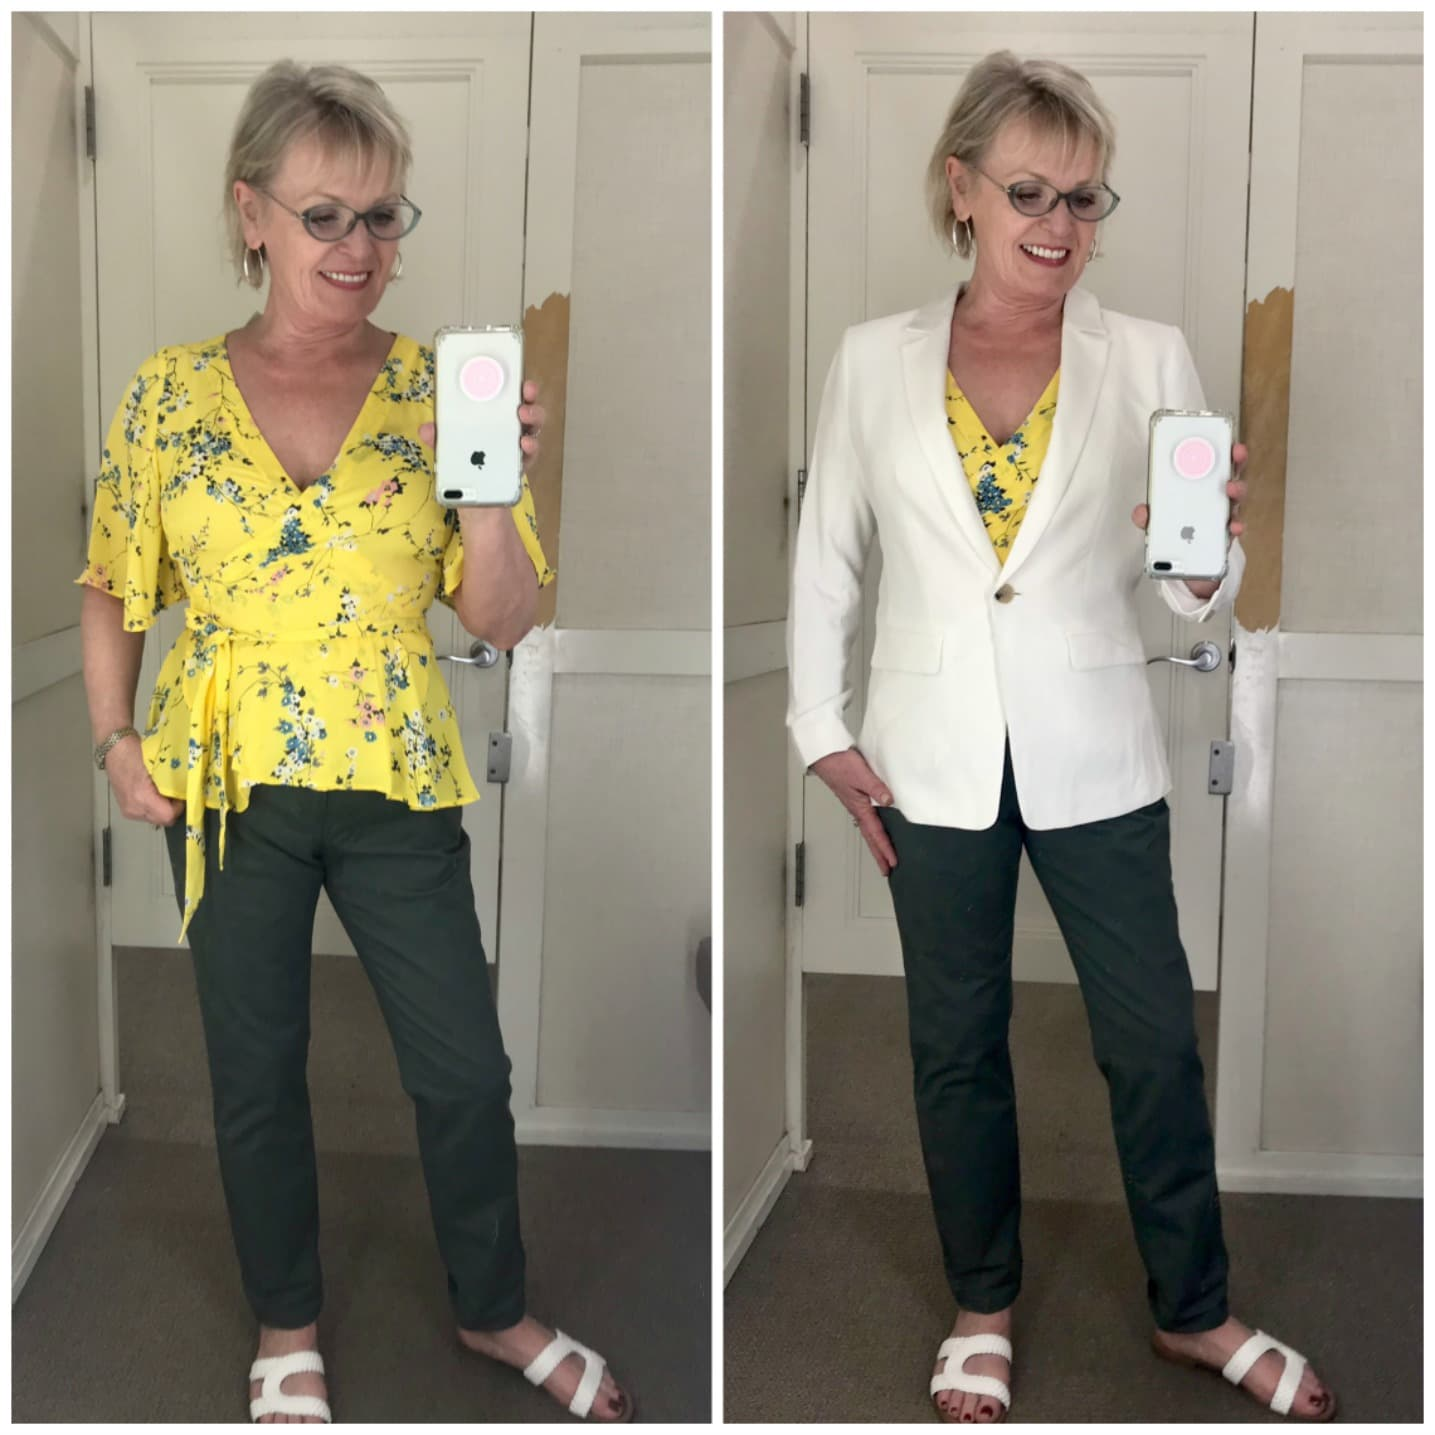 Yellow floral top, gray chinos and white jacket from Loft worn by Jennifer of A Well Styled Life